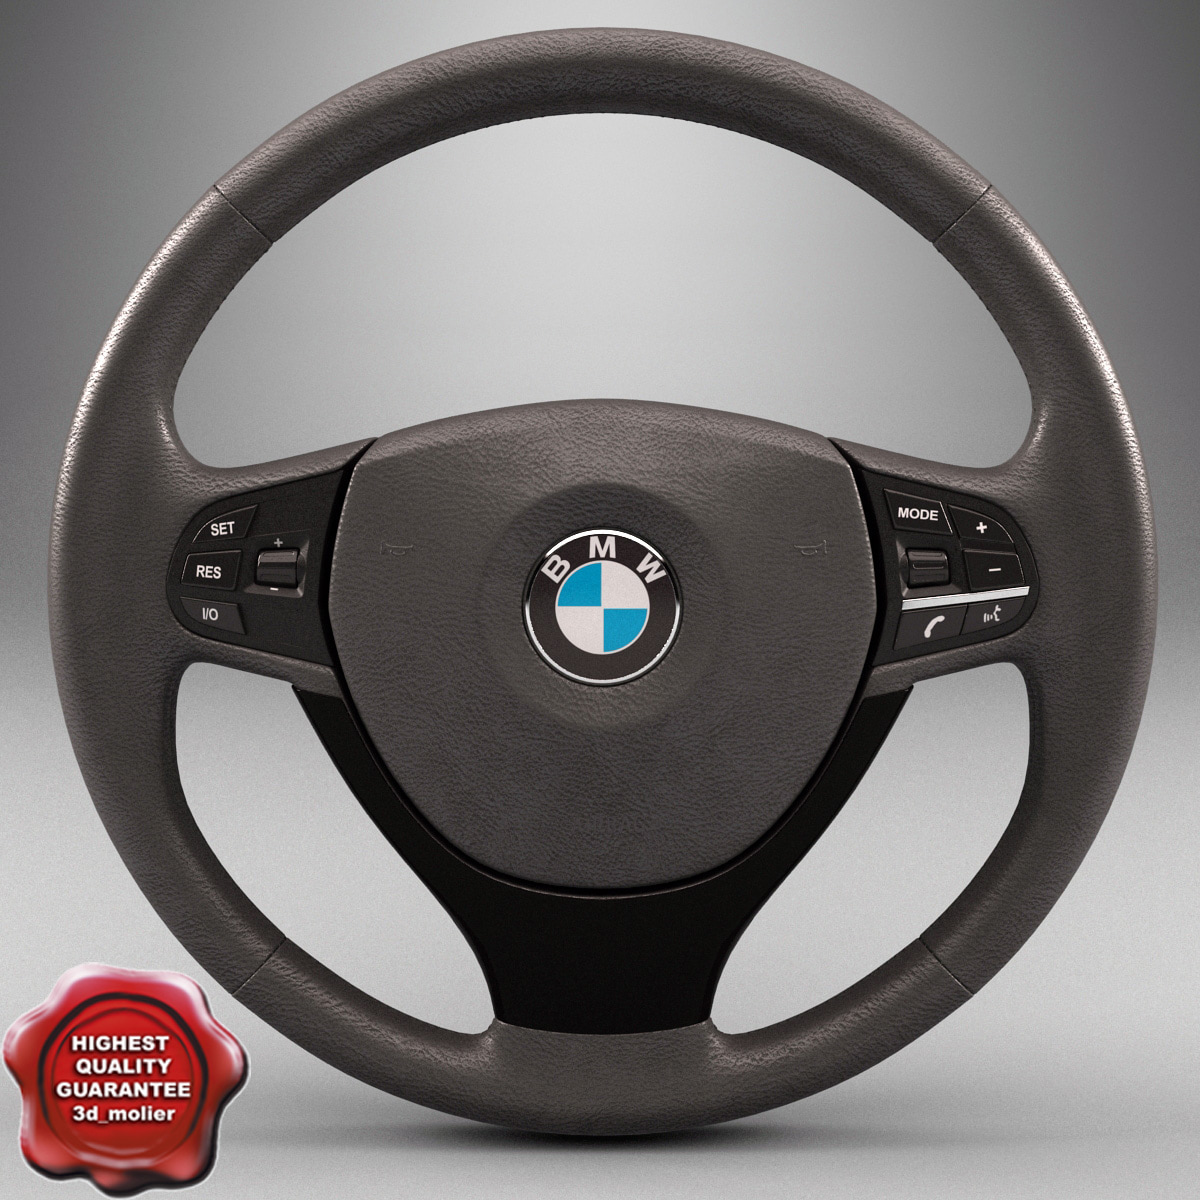 Bmw_7_Series_Steering_Wheel_00.jpg